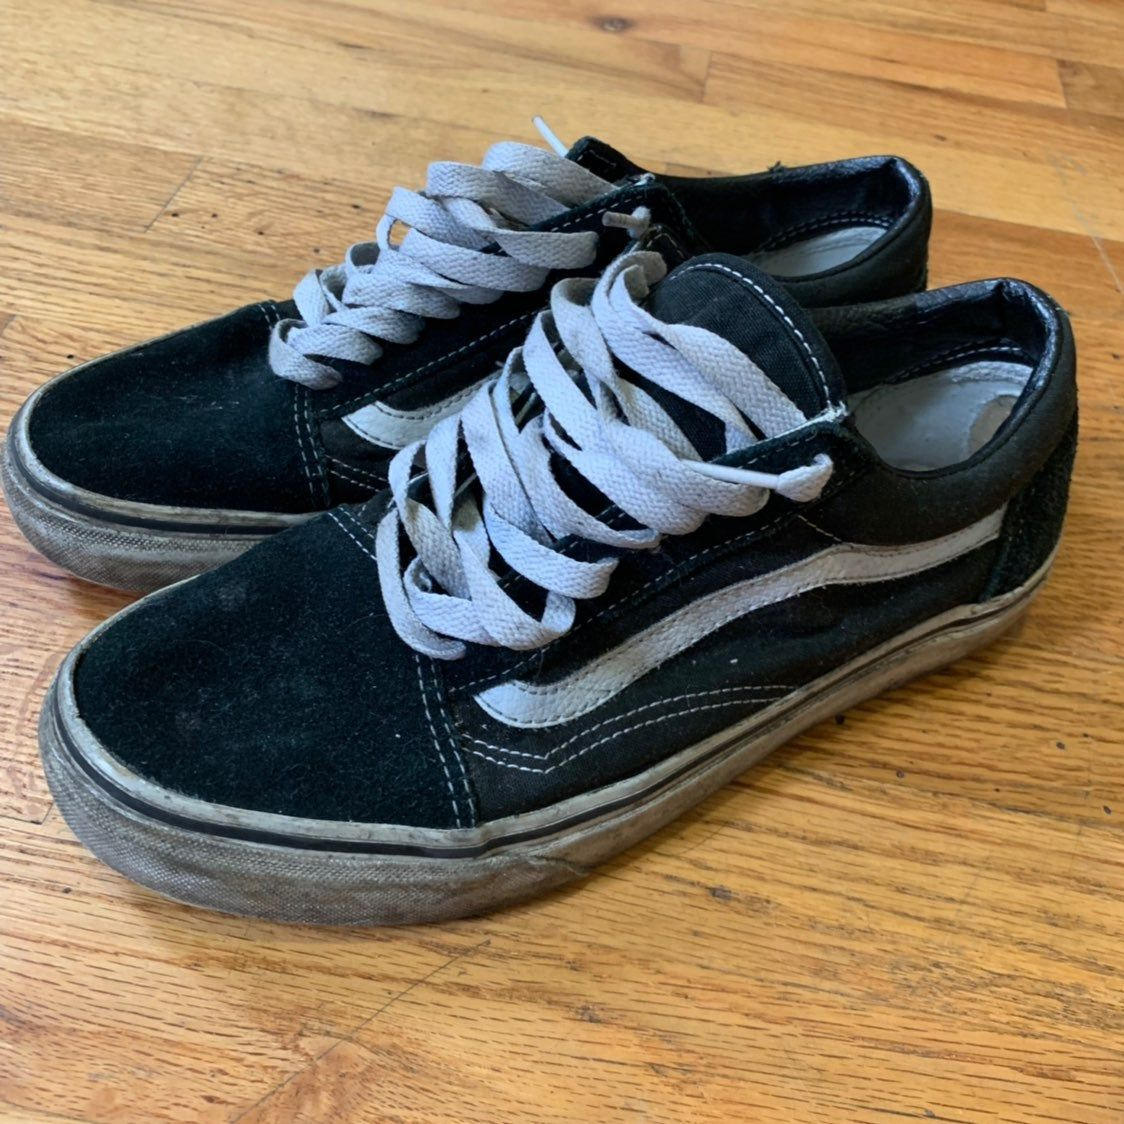 Beat up Vans Old Skool Skate Shoes Size 7.5 Mens / 9 Womens